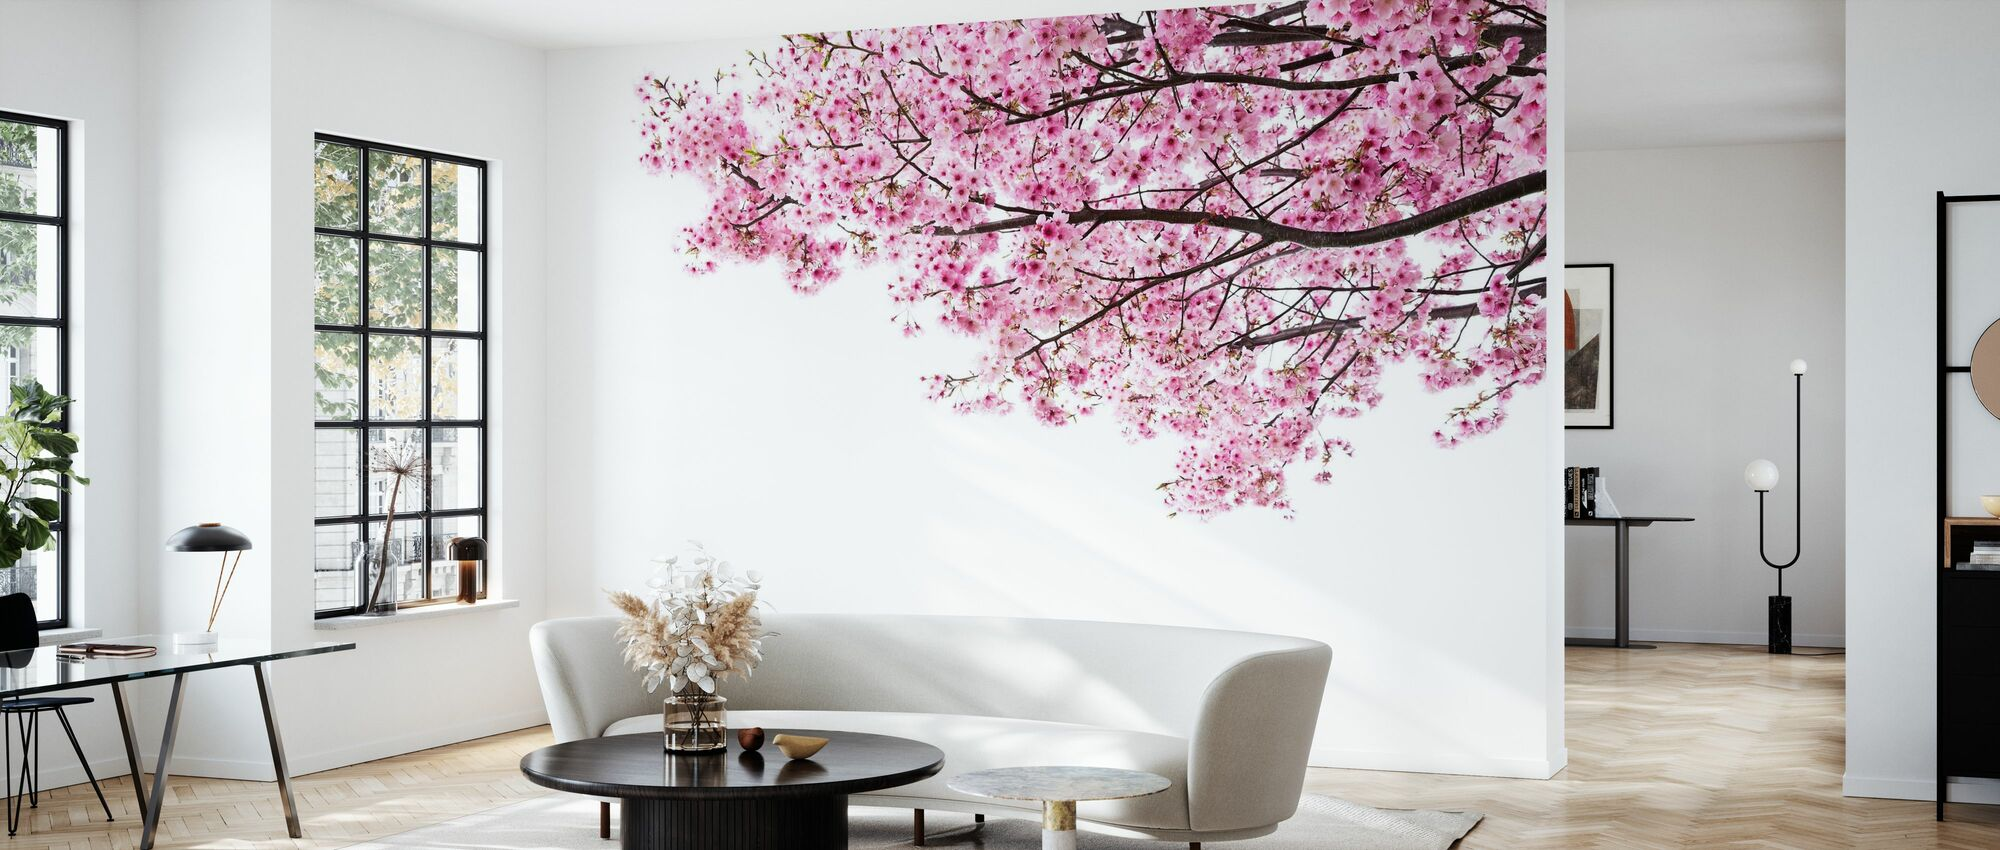 Pink Cherry Blossoms - Wallpaper - Living Room